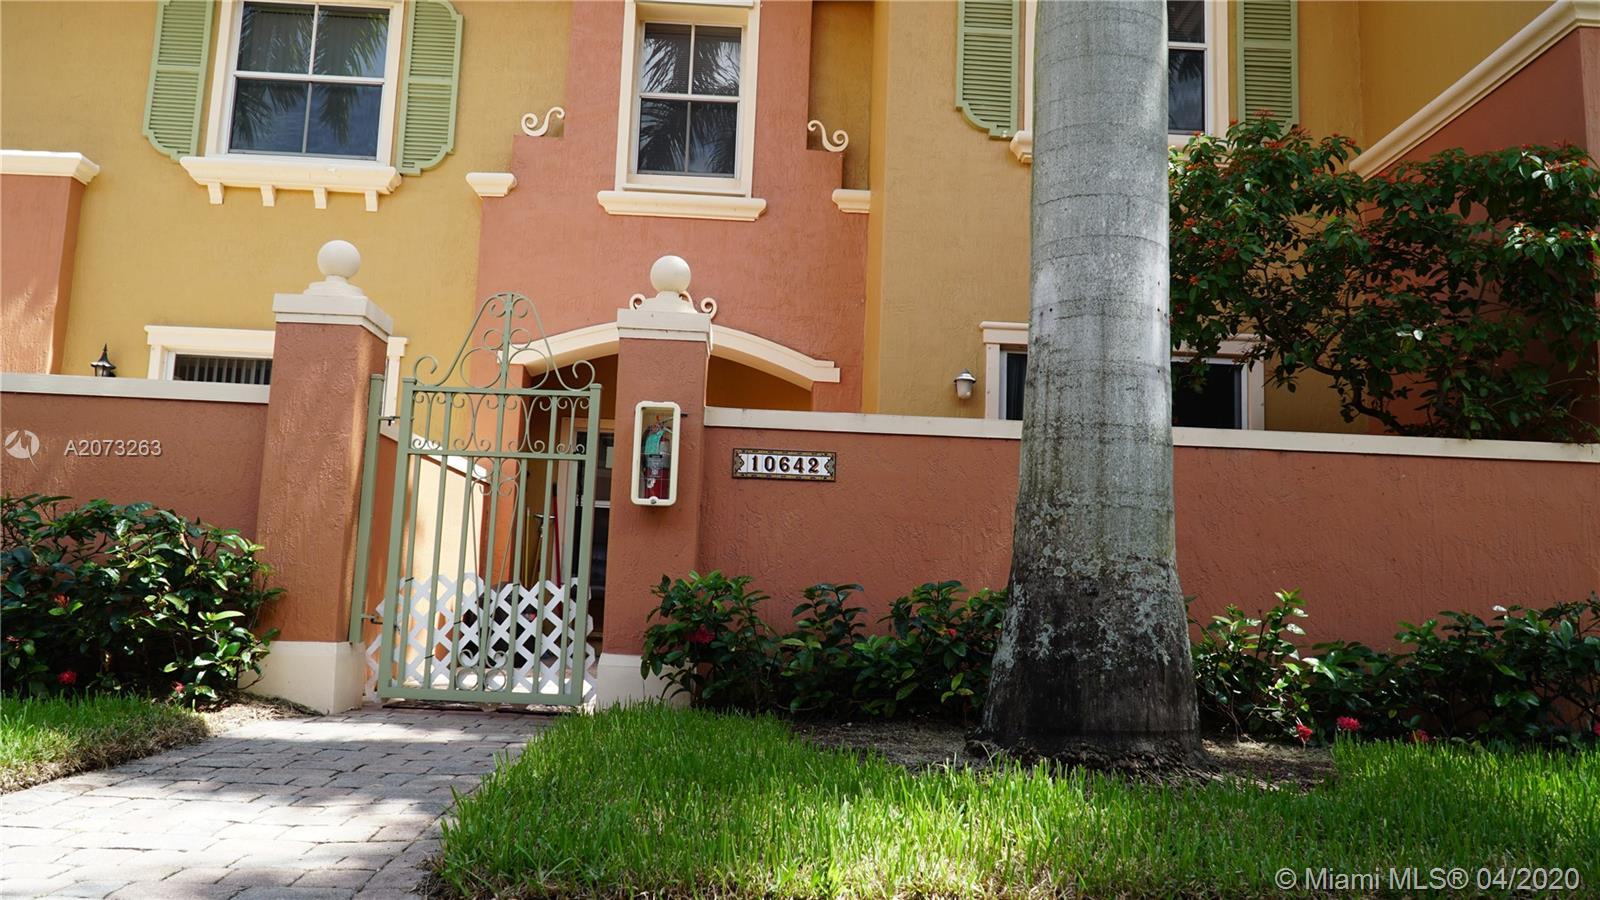 10642 SW 7 ST #2109 For Sale A2073263, FL